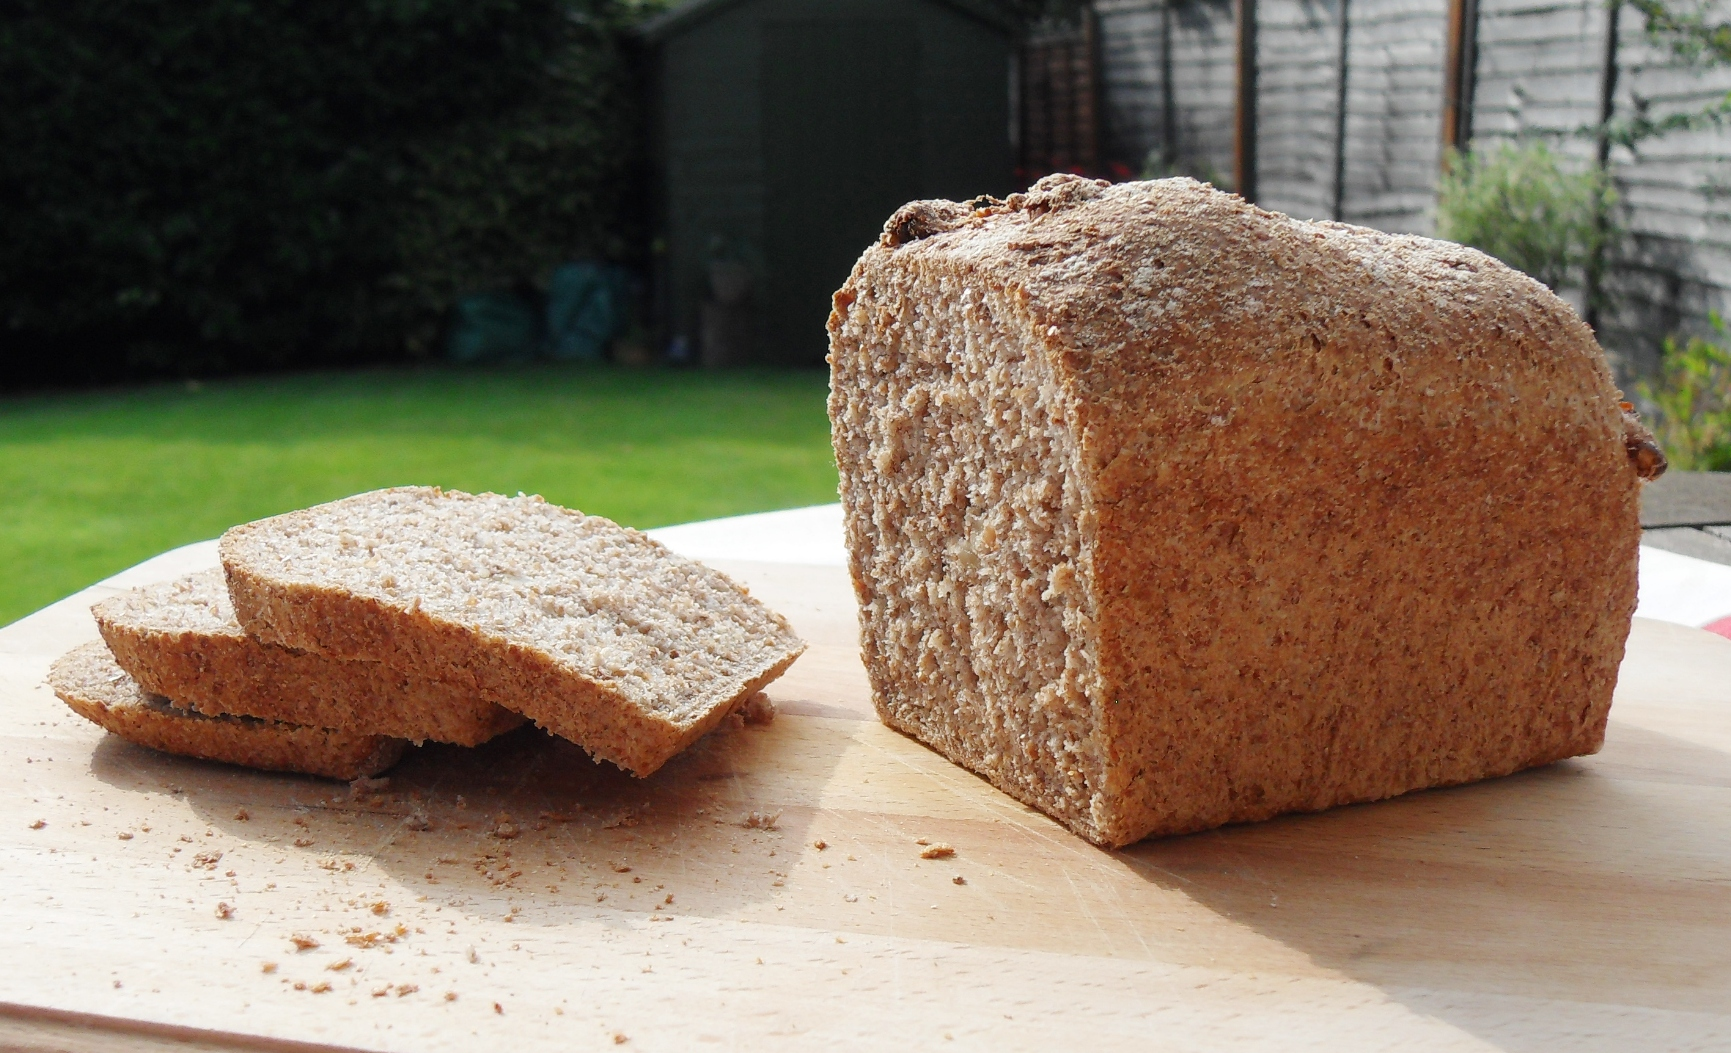 Walnutty Wholemeal Bread on a board in garden.